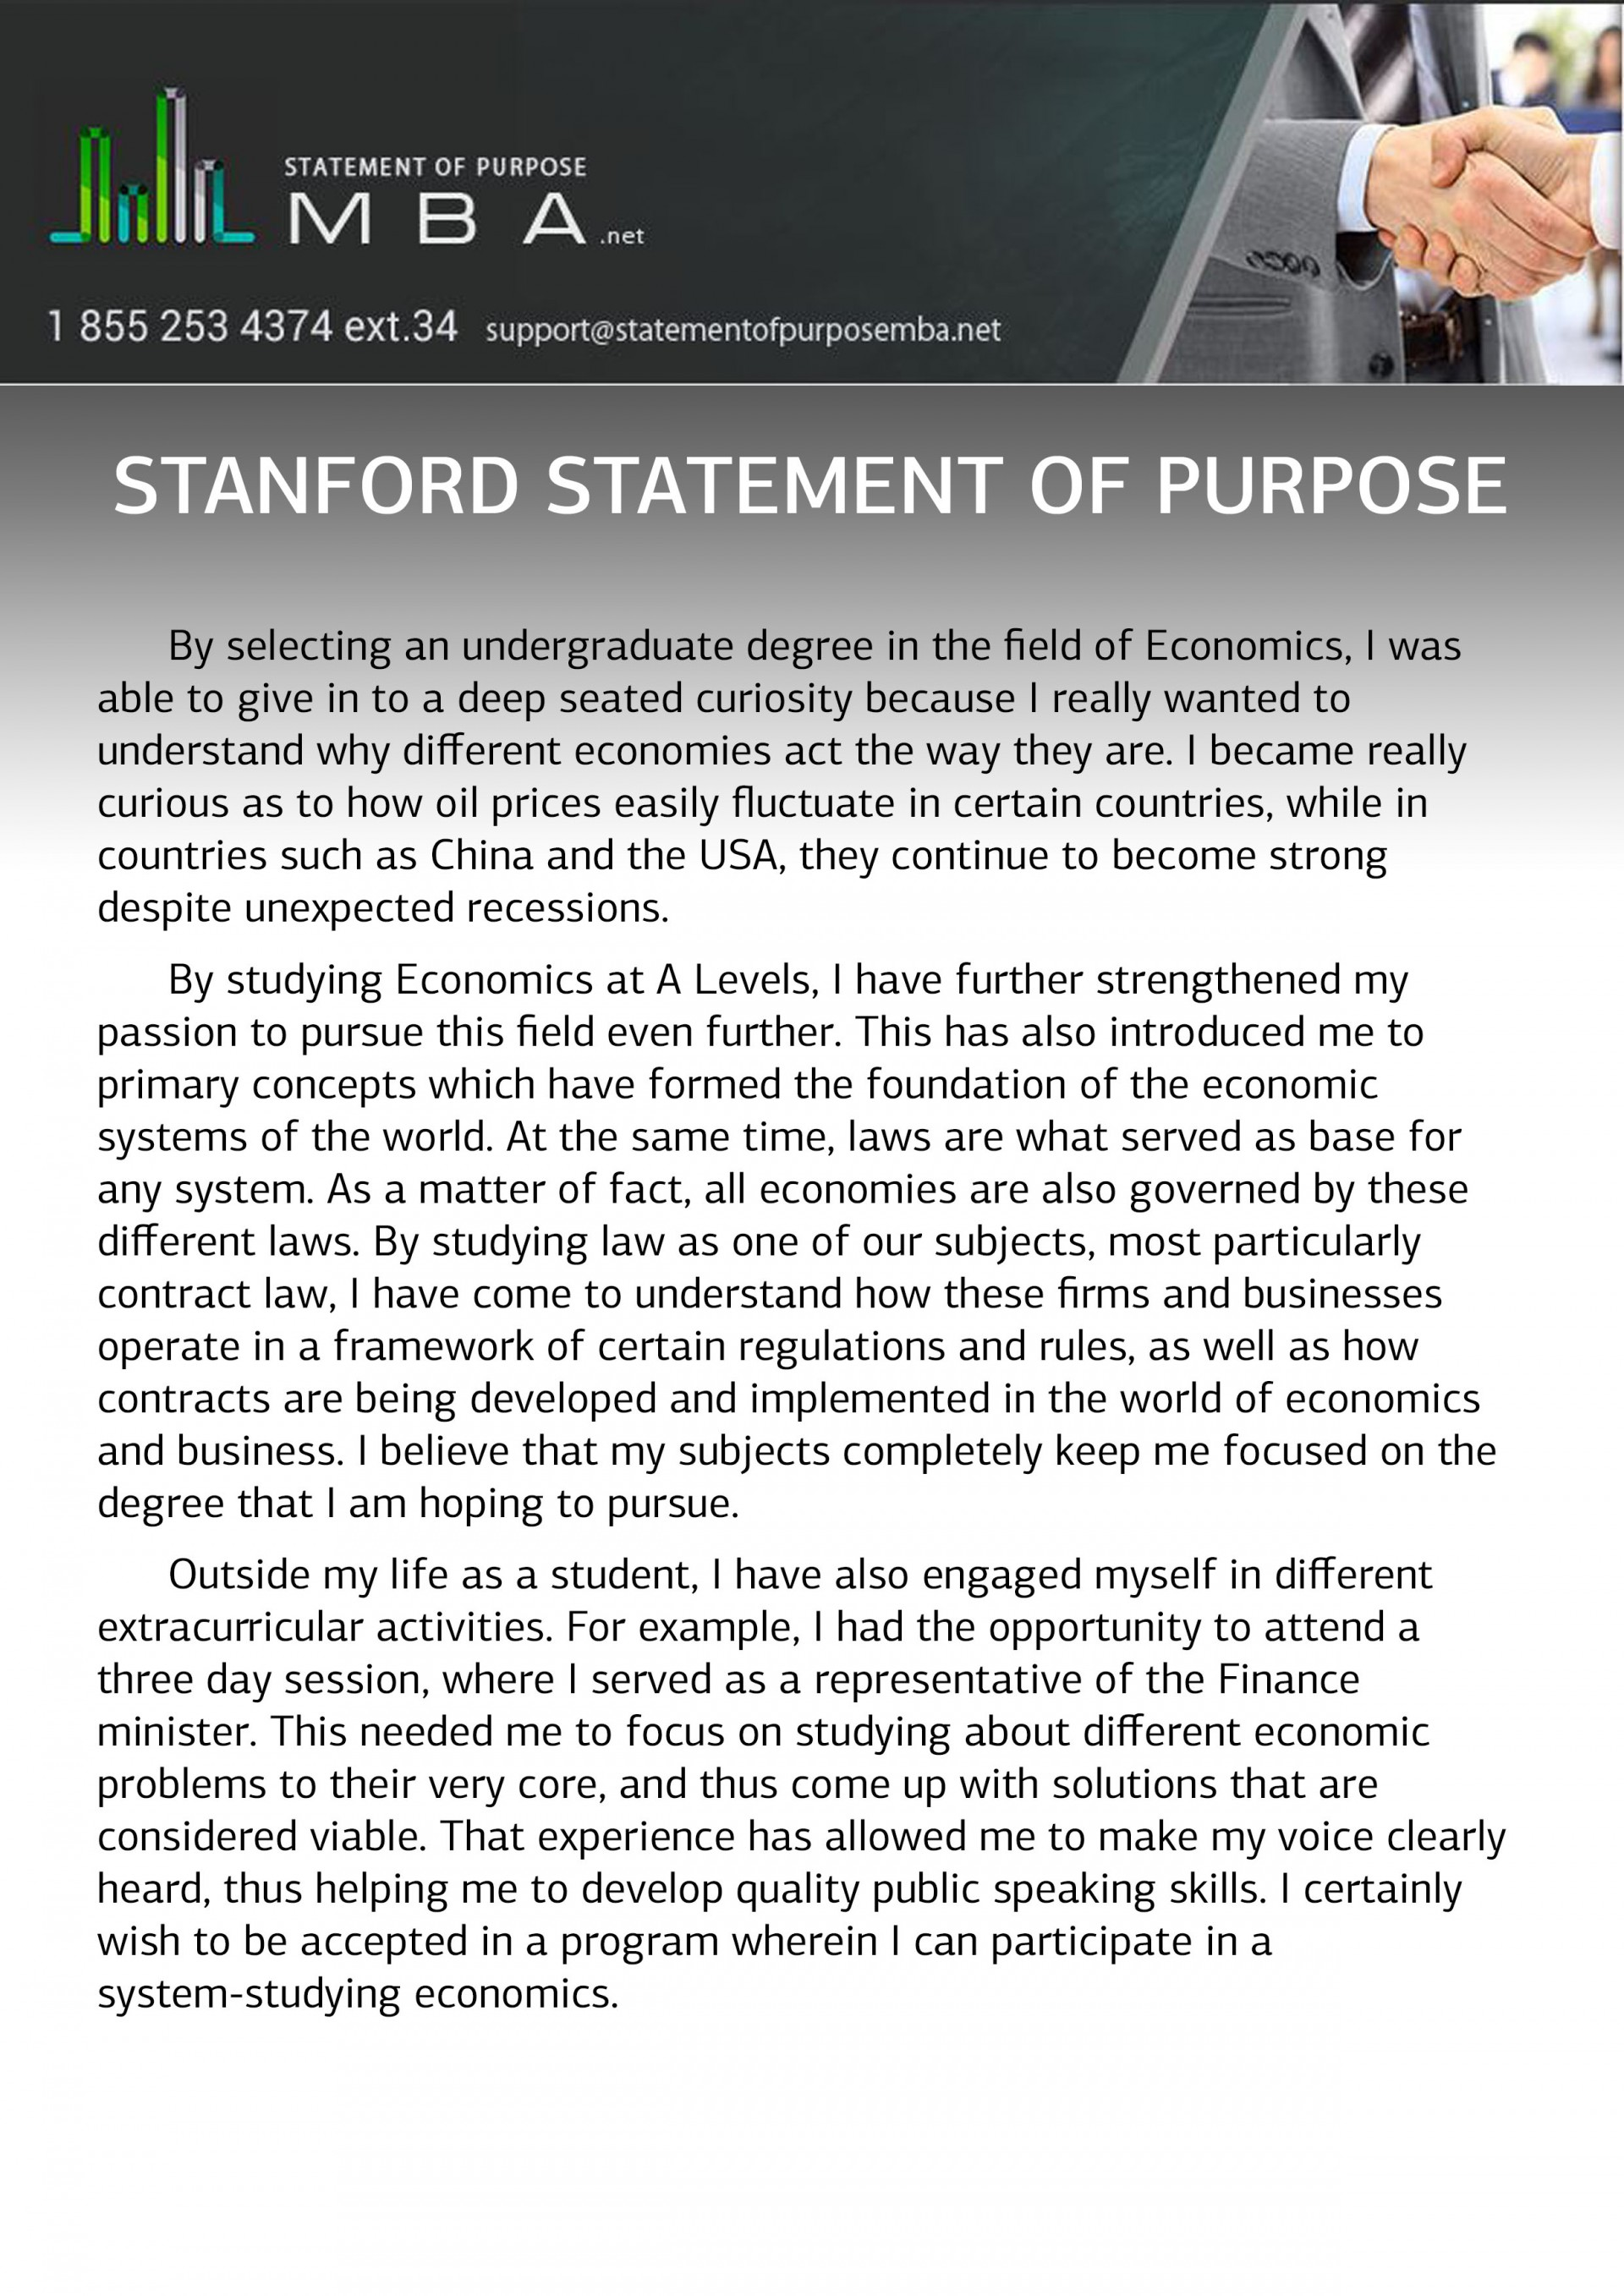 020 Stanford Statement Of Purpose Sample Essay Example Phenomenal Prompts Examples Application 1920